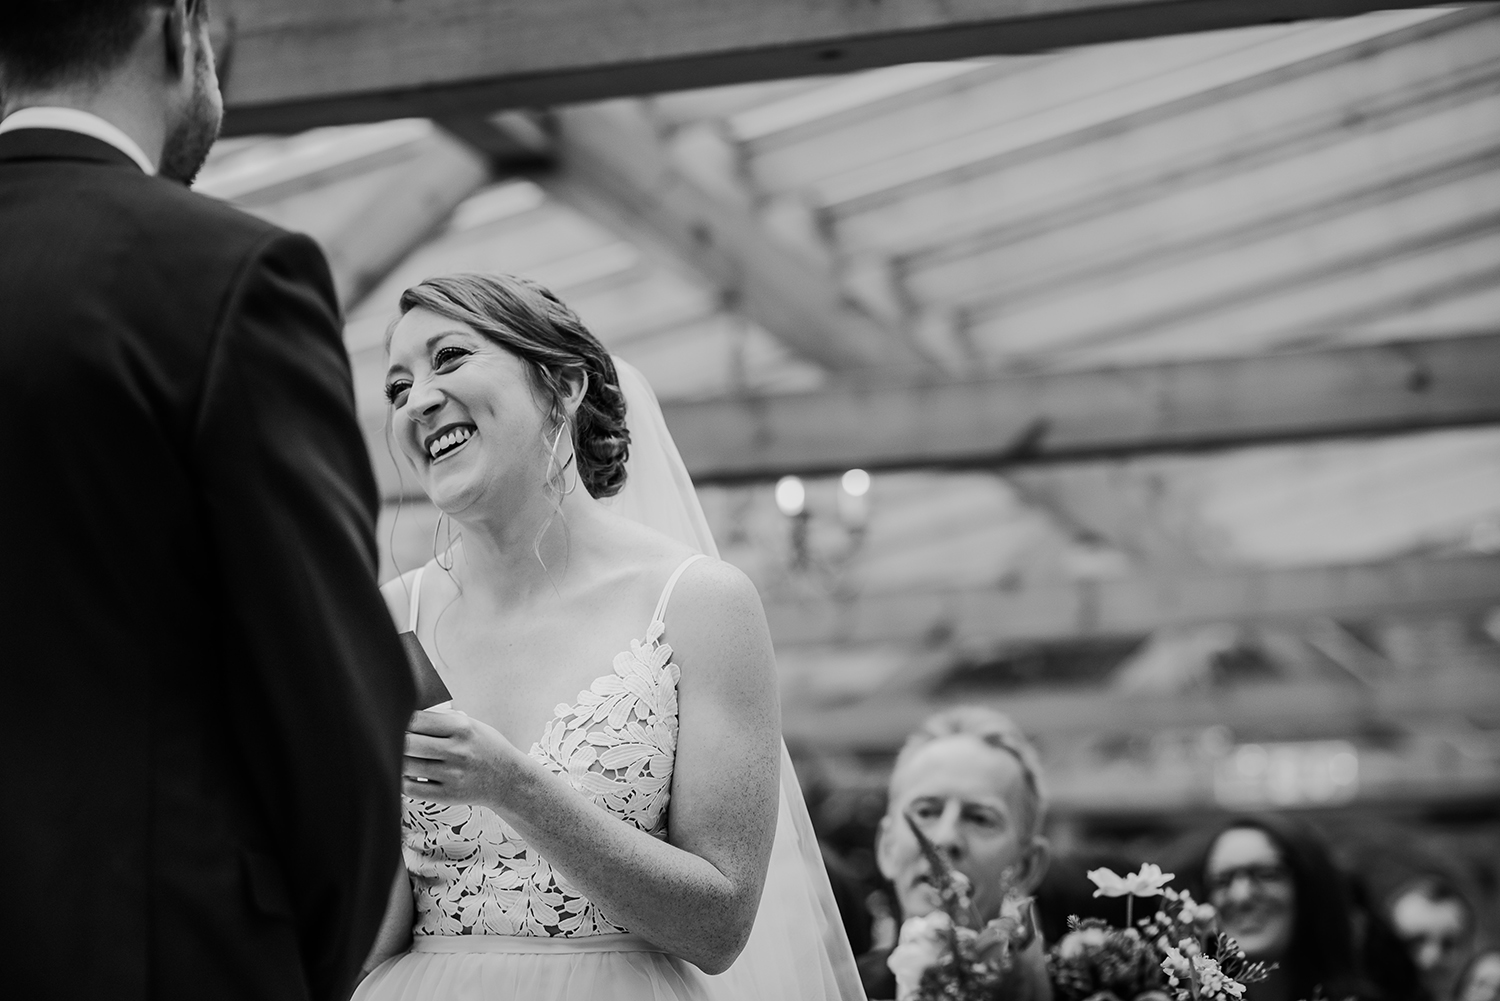 BW photo of the bride smiling at the groom